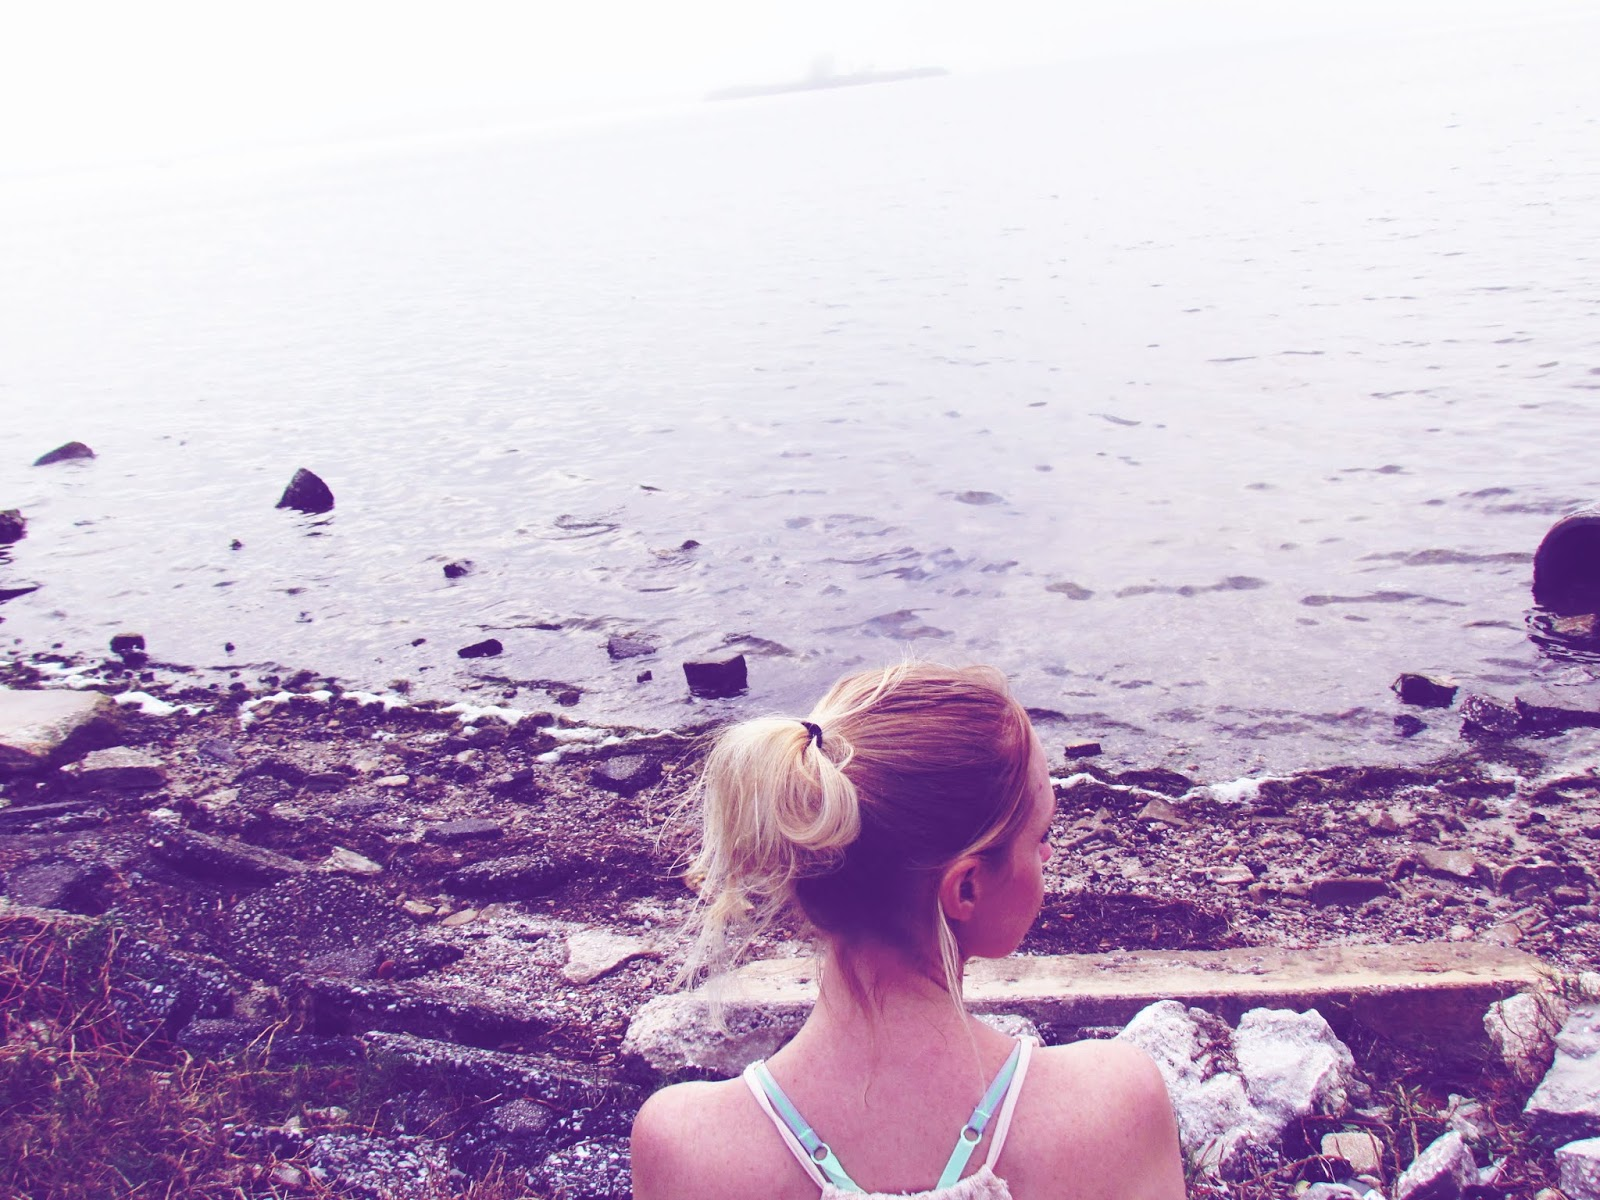 Blonde Woman With Ponytail Sitting on a Rocky Beach Overlooking Tampa Bay in Winter